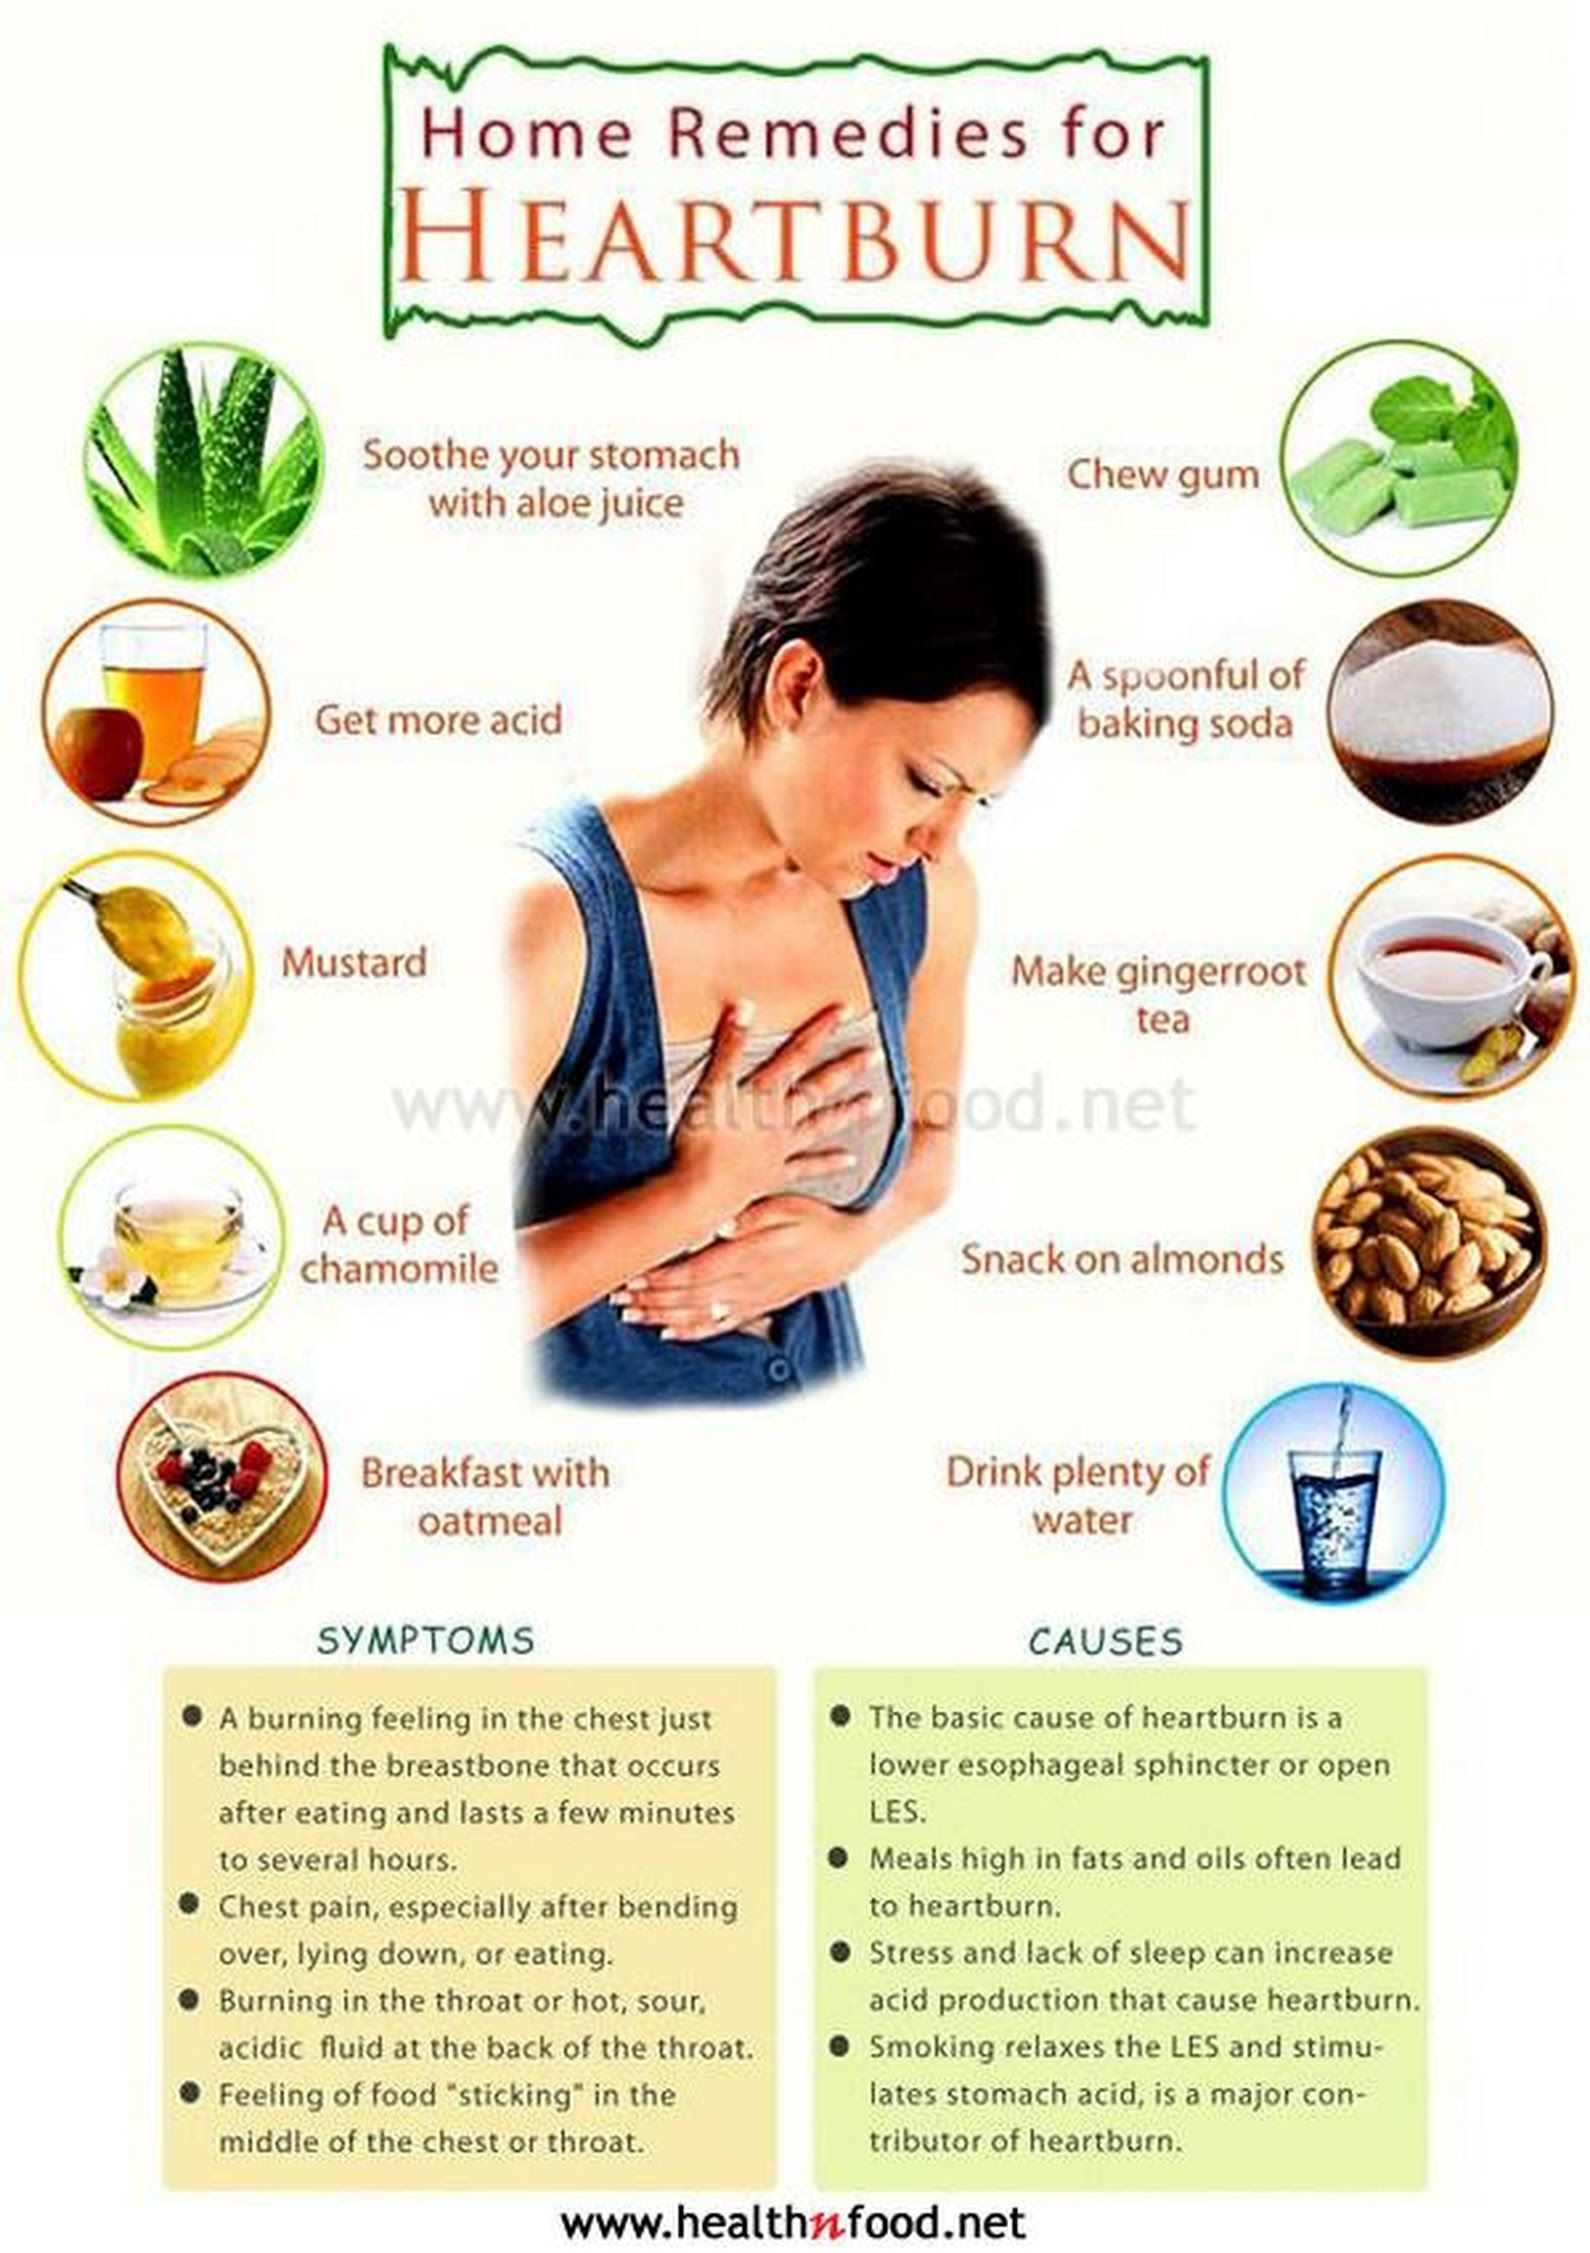 da326fb3c8b2bde43939056a6311a36d - How To Get Rid Of Heartburn And Chest Pain